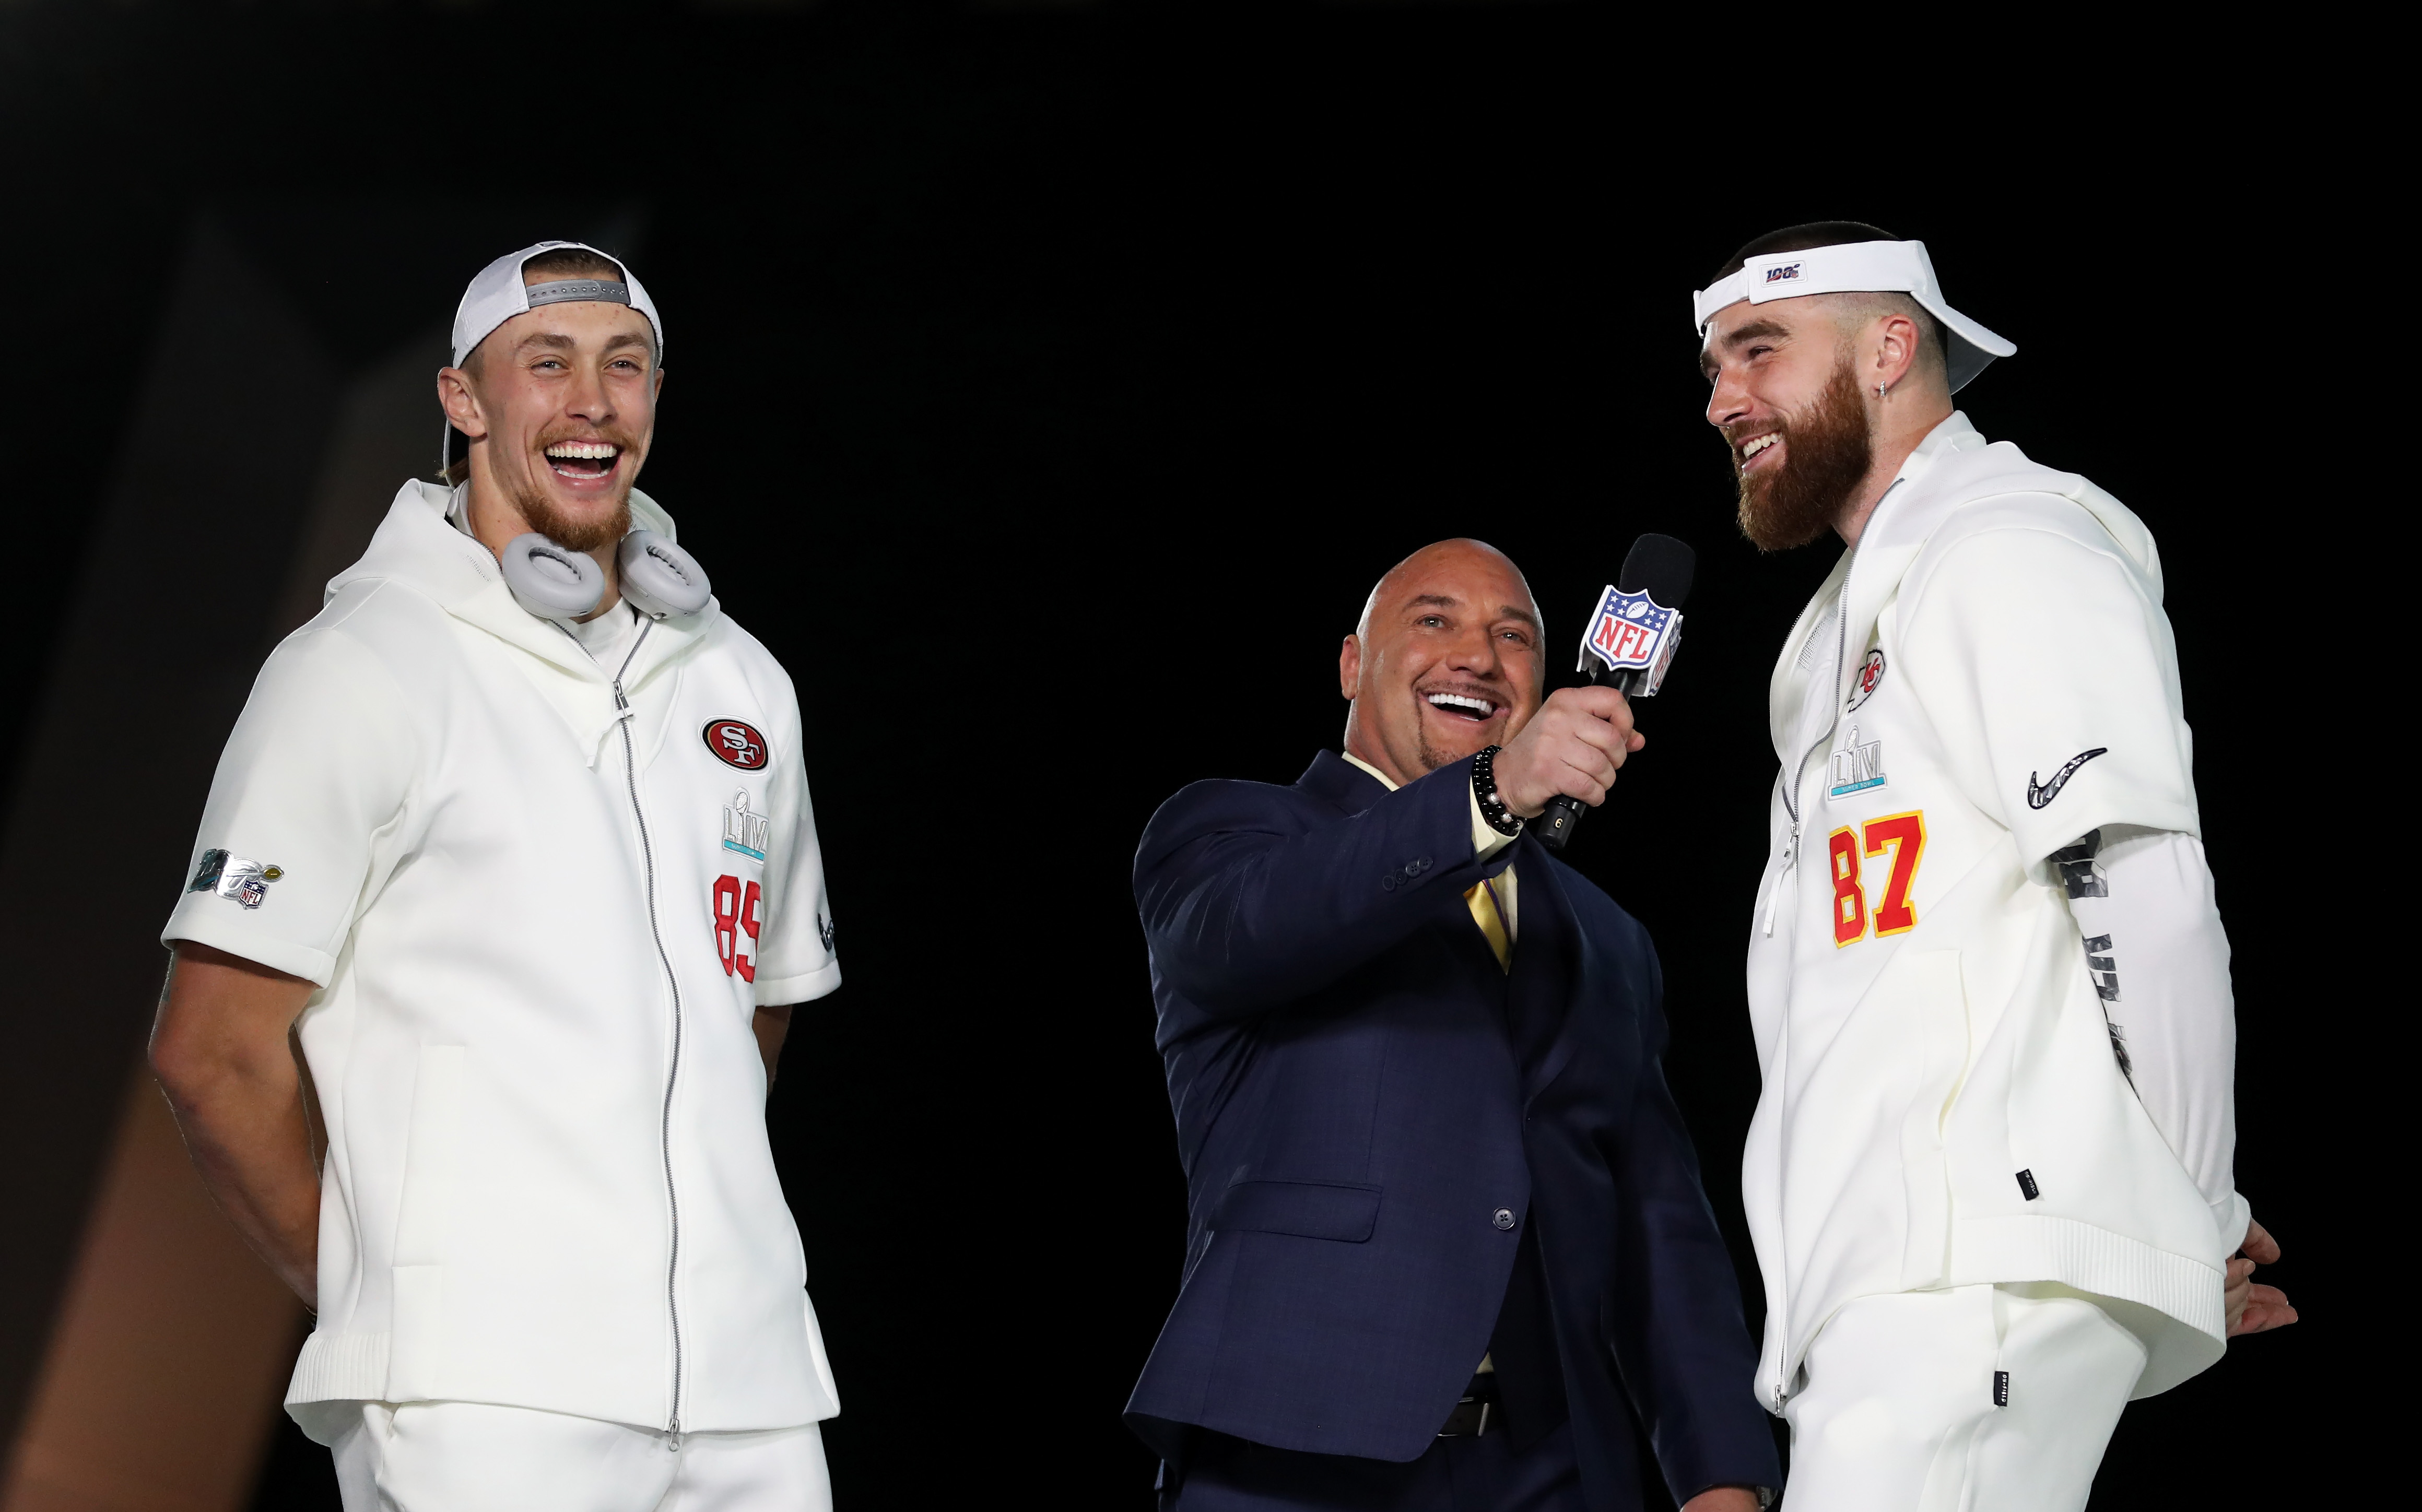 Travis Kelce and George Kittle giving an interview before the Super Bowl